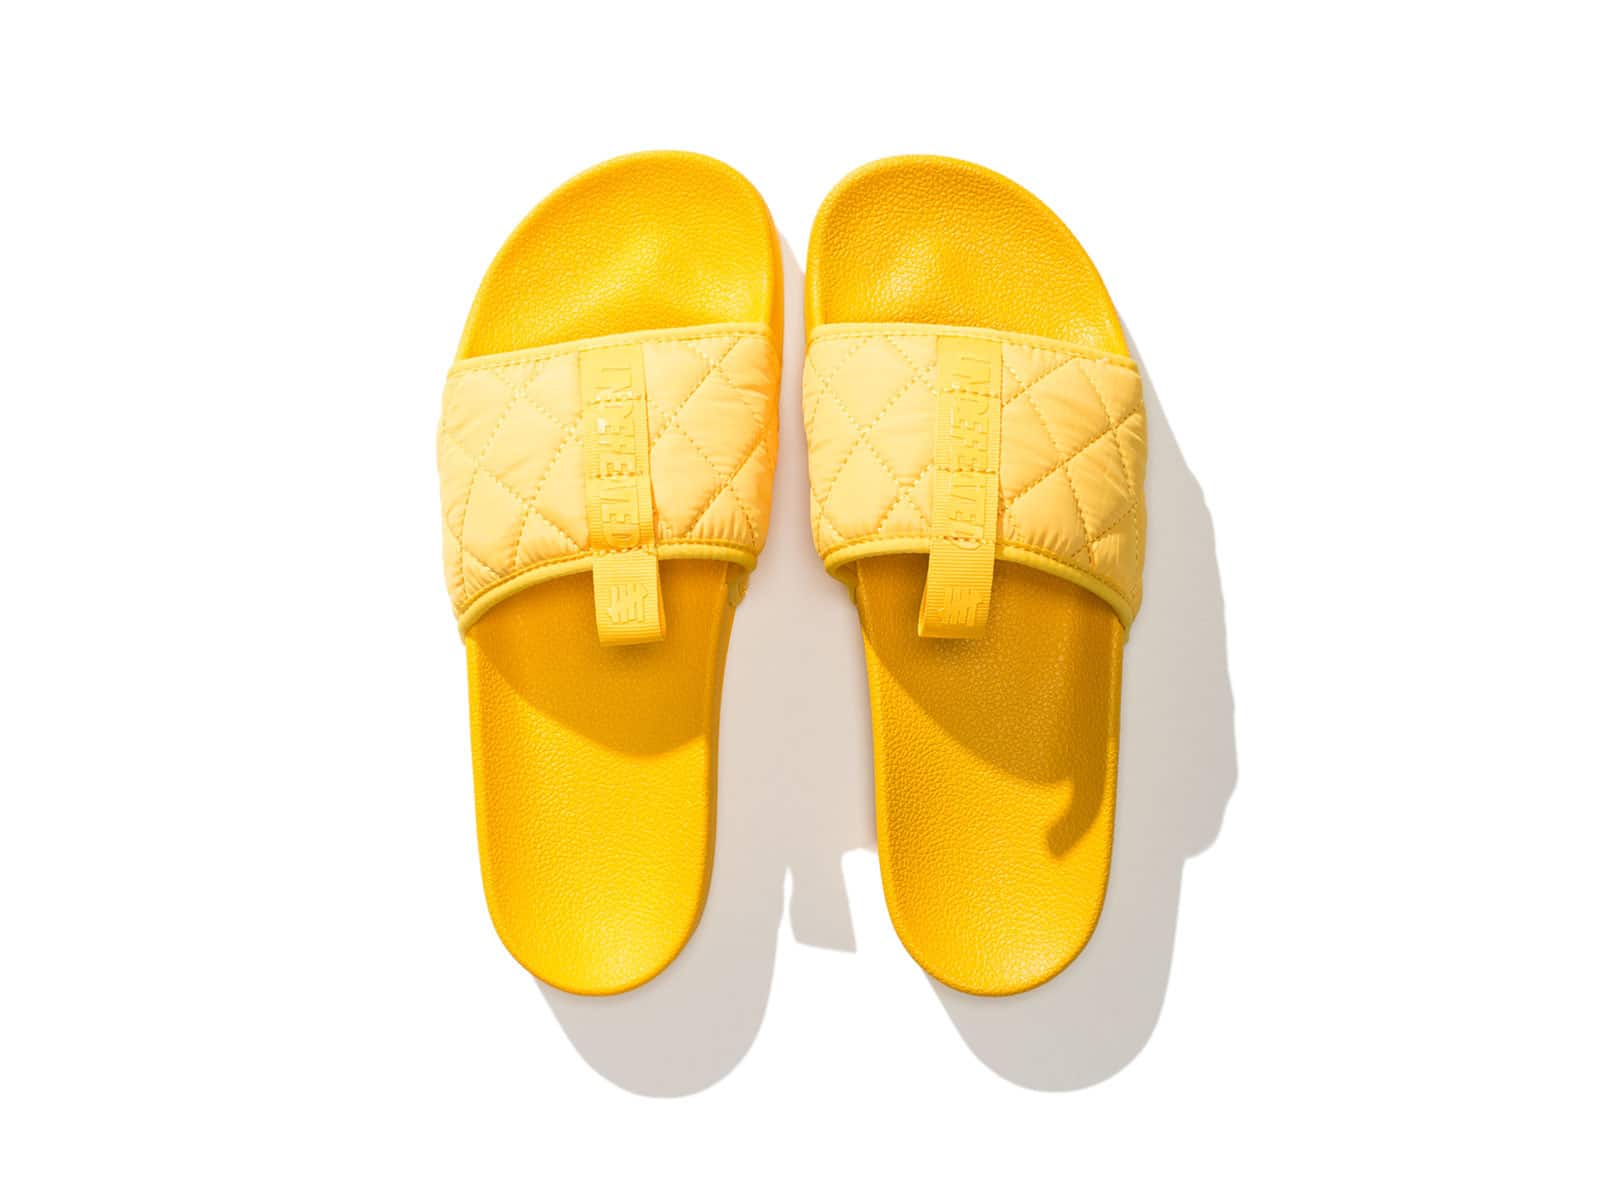 UNDEFEATED QUILTED SLIDE - YELLOW